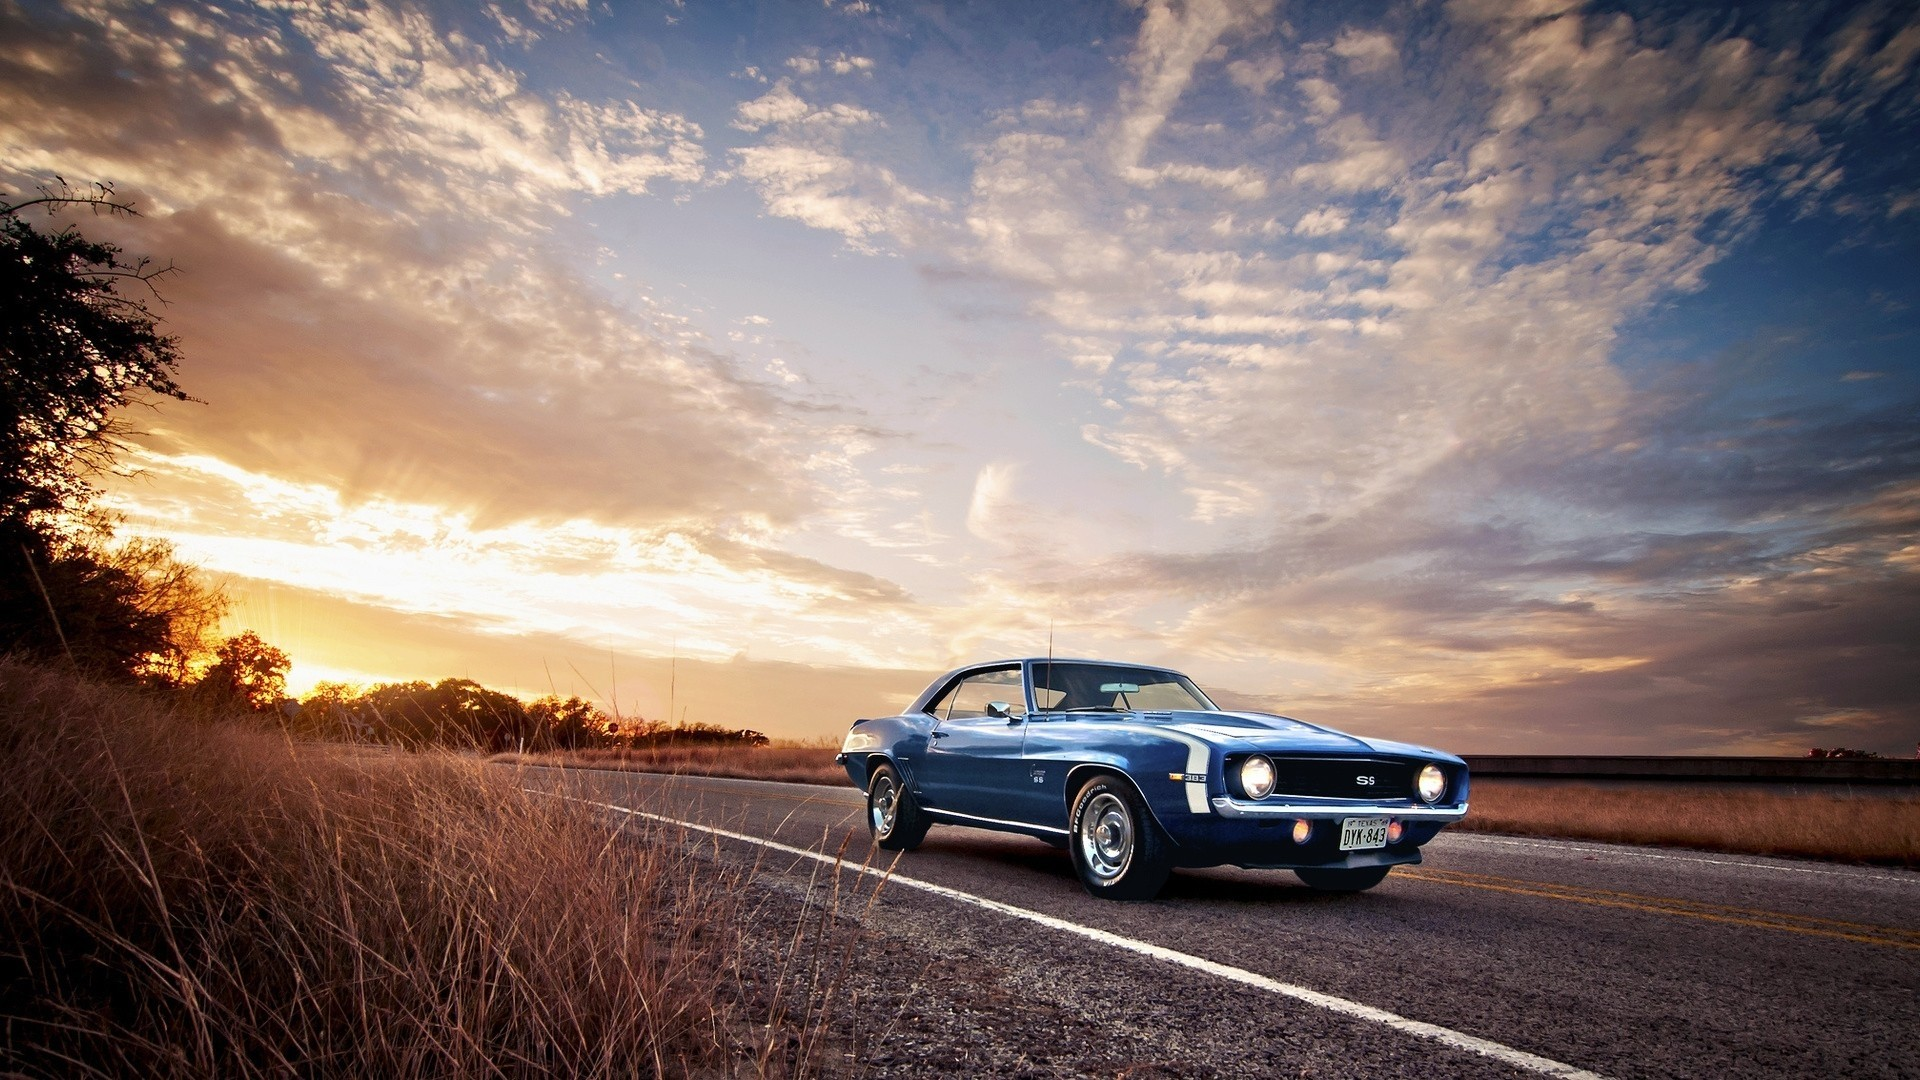 Res: 1920x1080, Classic Car Wallpapers Mobile